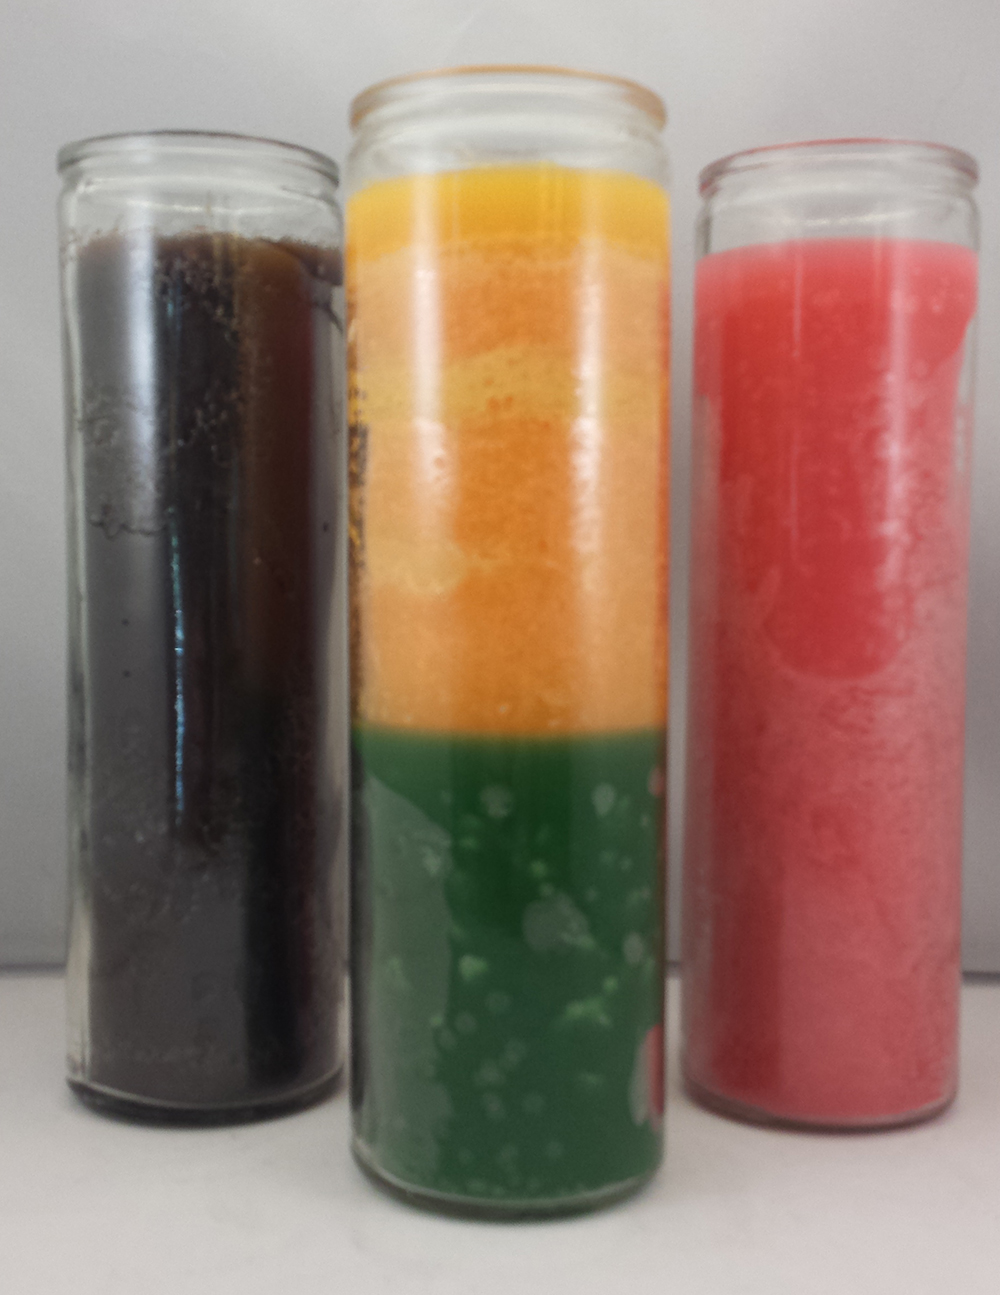 7 -Day Glass-Encased Unlabeled Candles